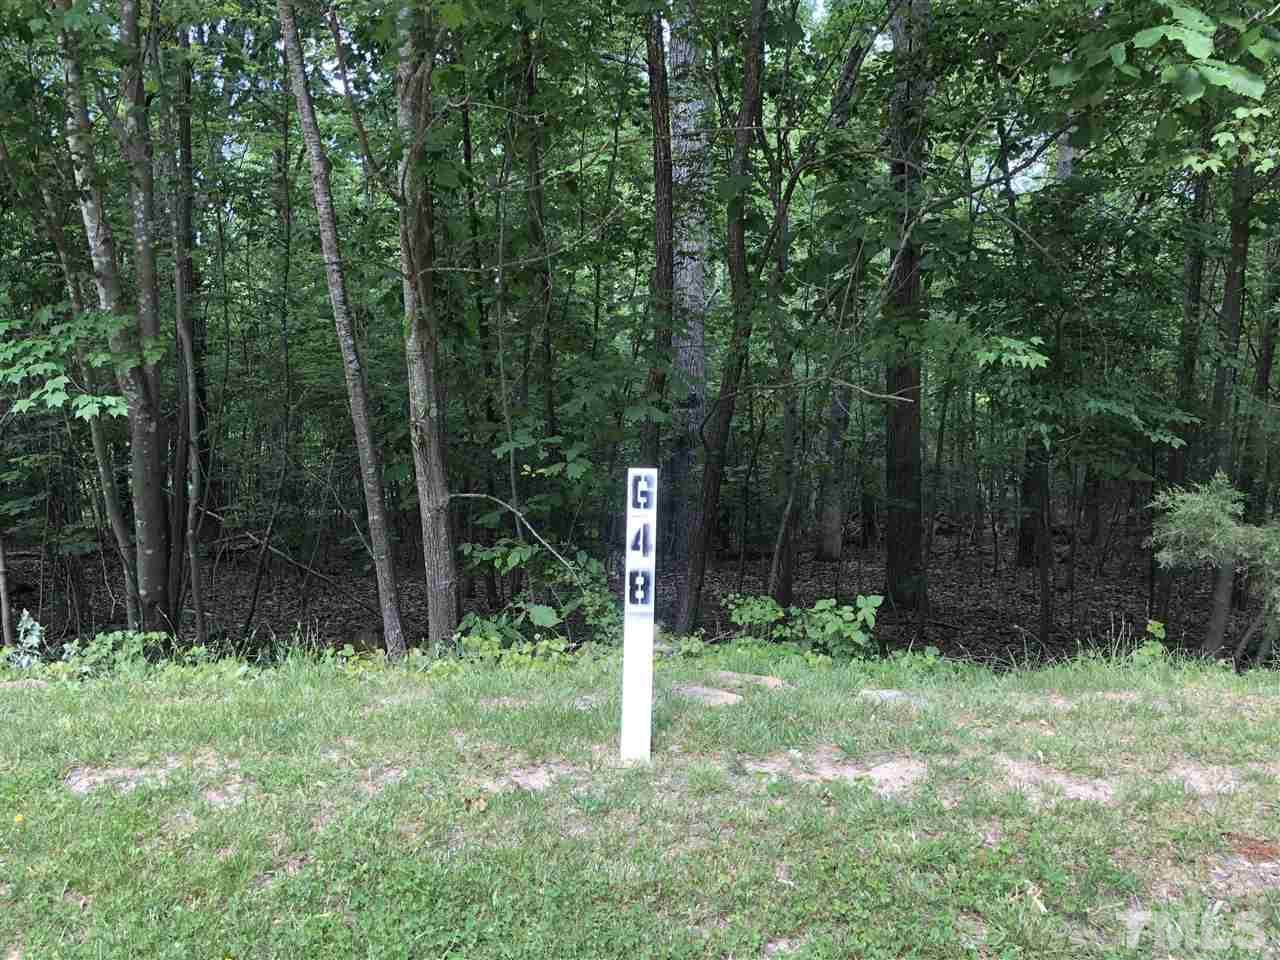 32521 Archdale - Photo 1